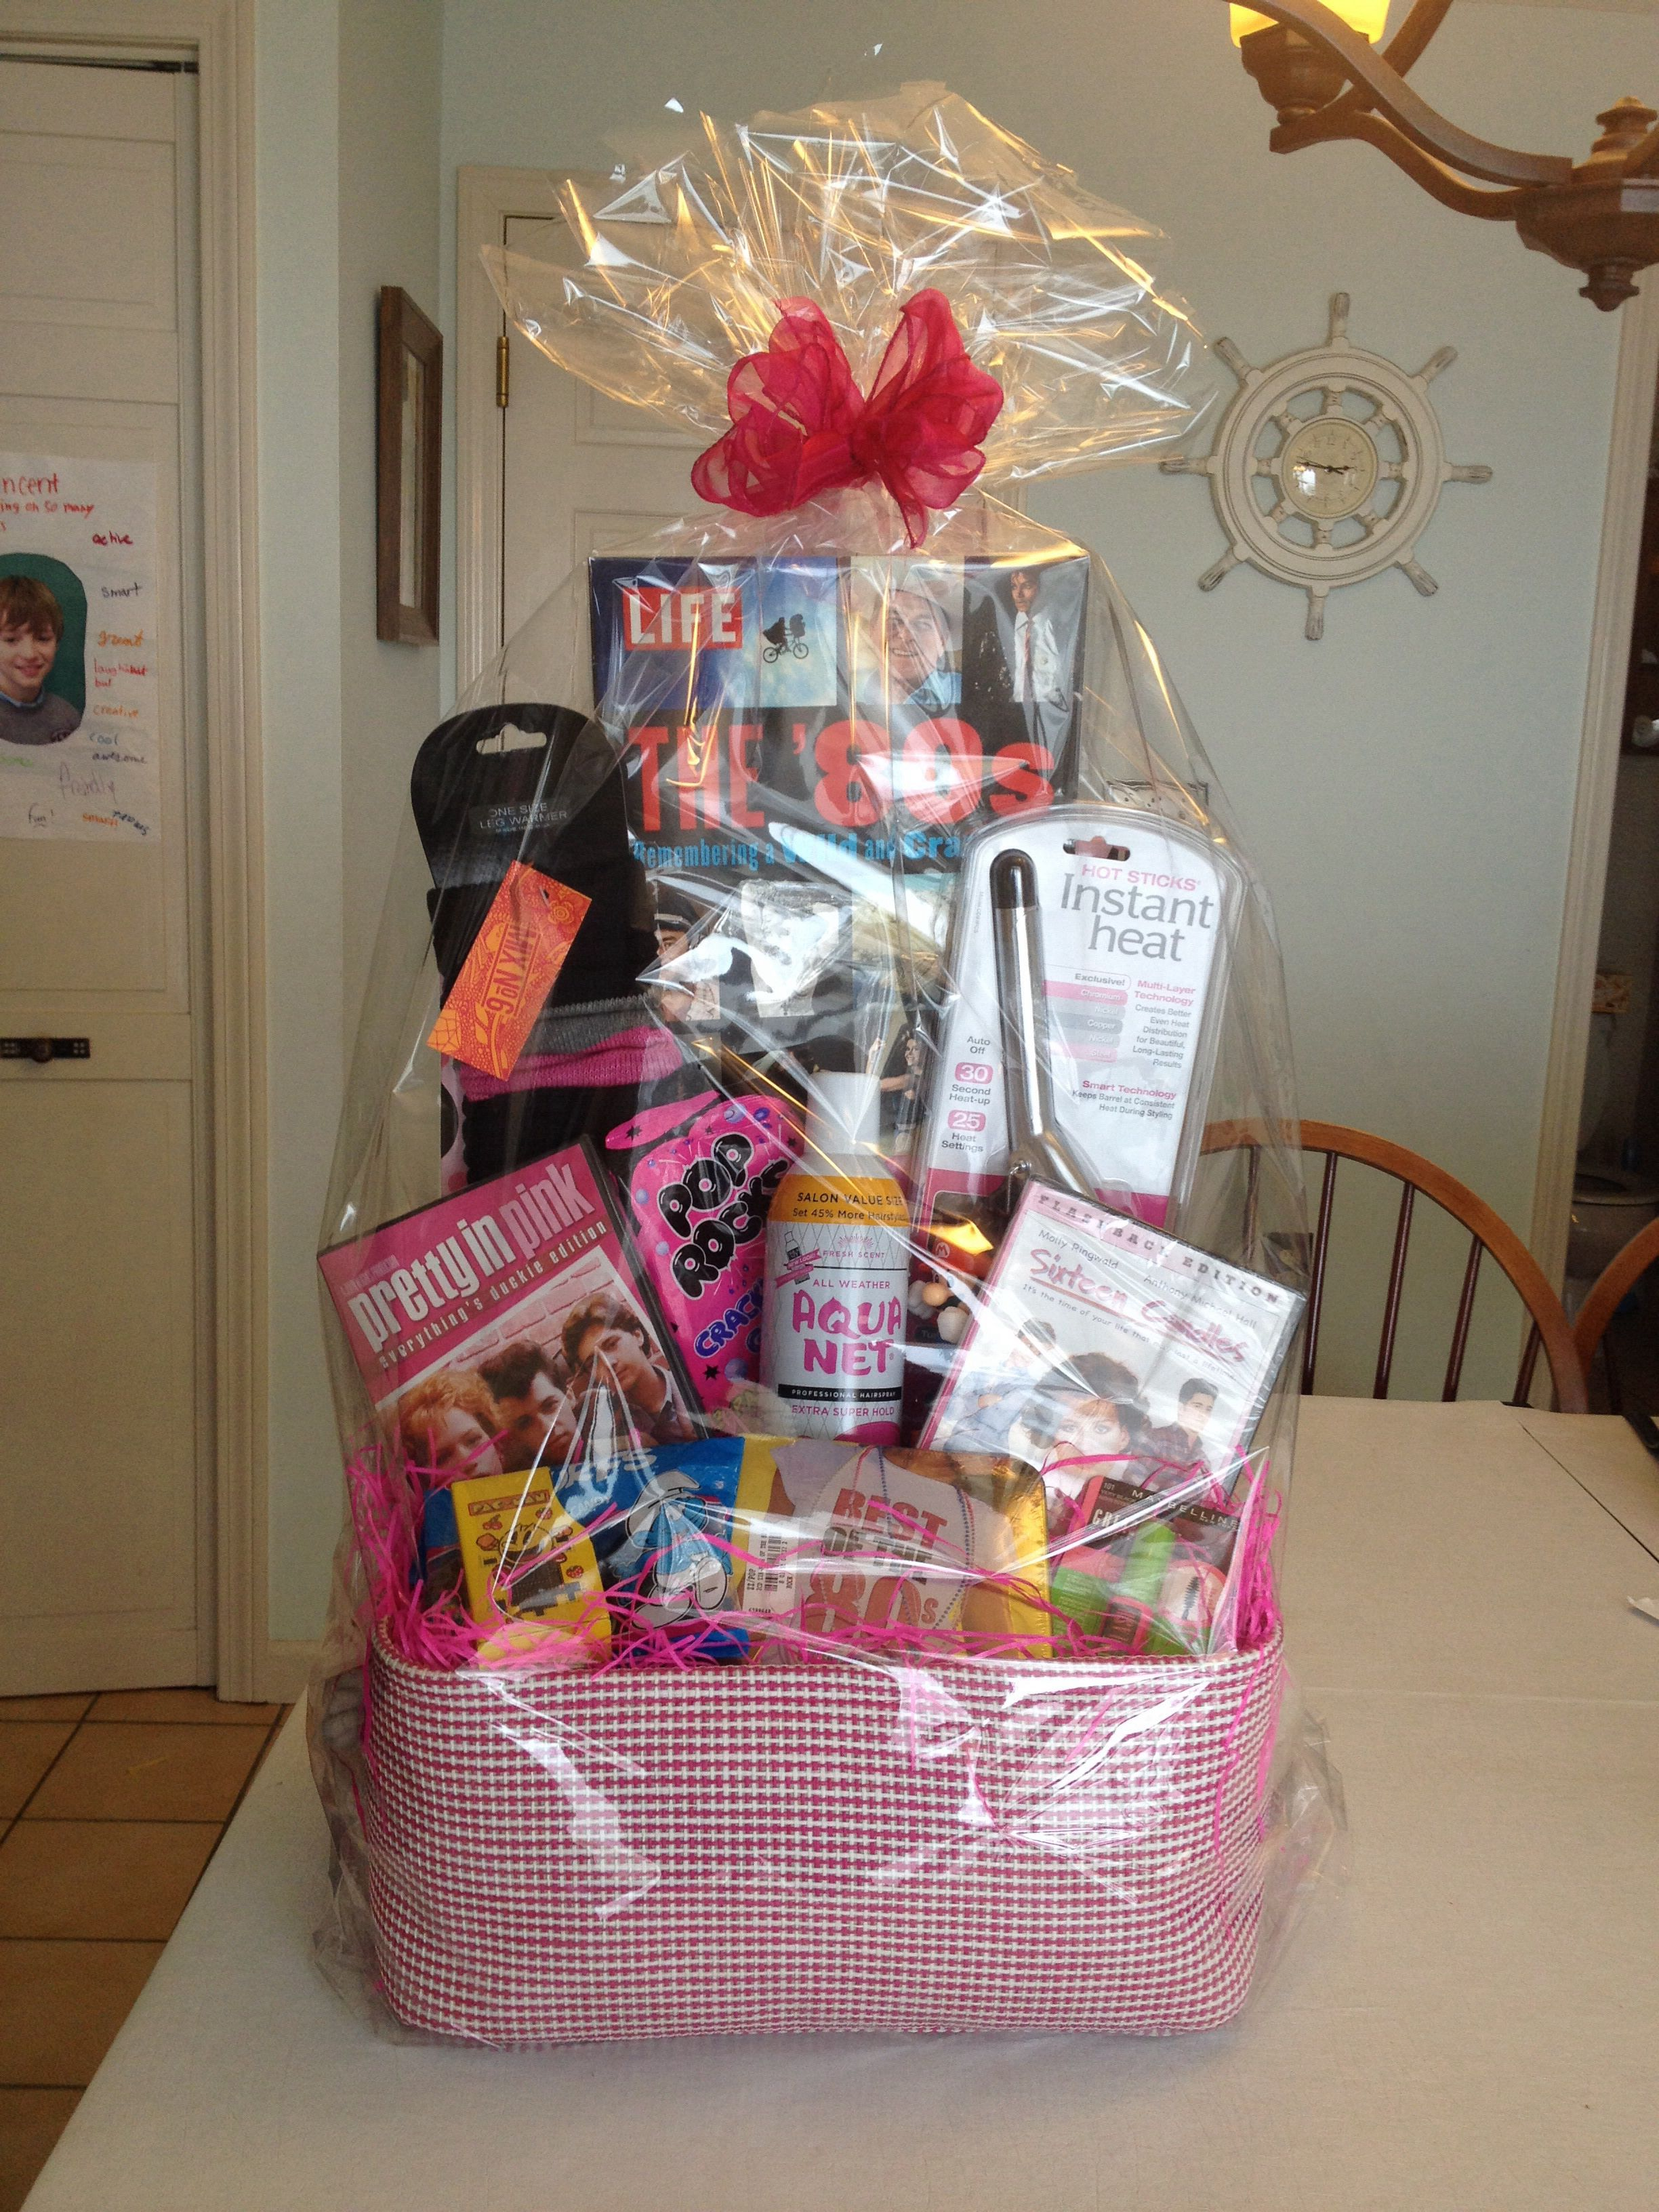 80 S Basket Theme Baskets Auction Gift Basket Ideas Themed Gift Baskets